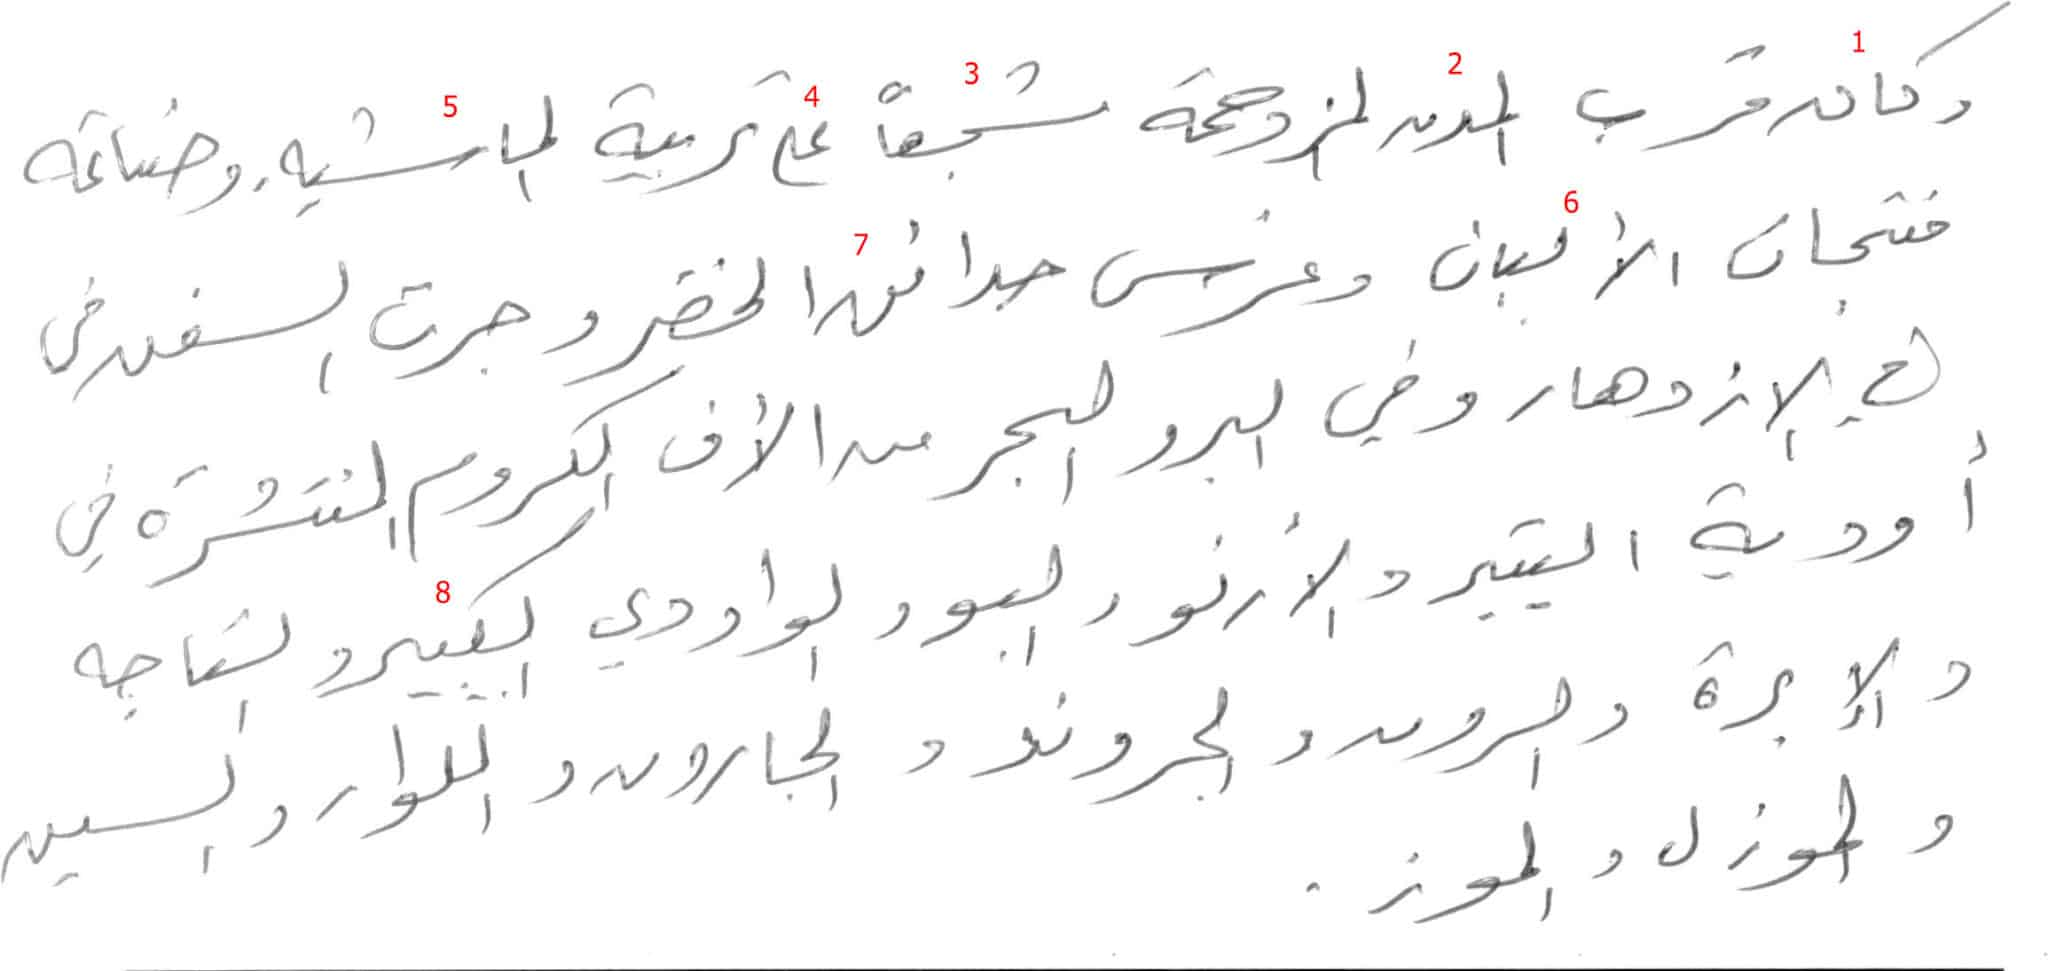 arabic-handwriting-06